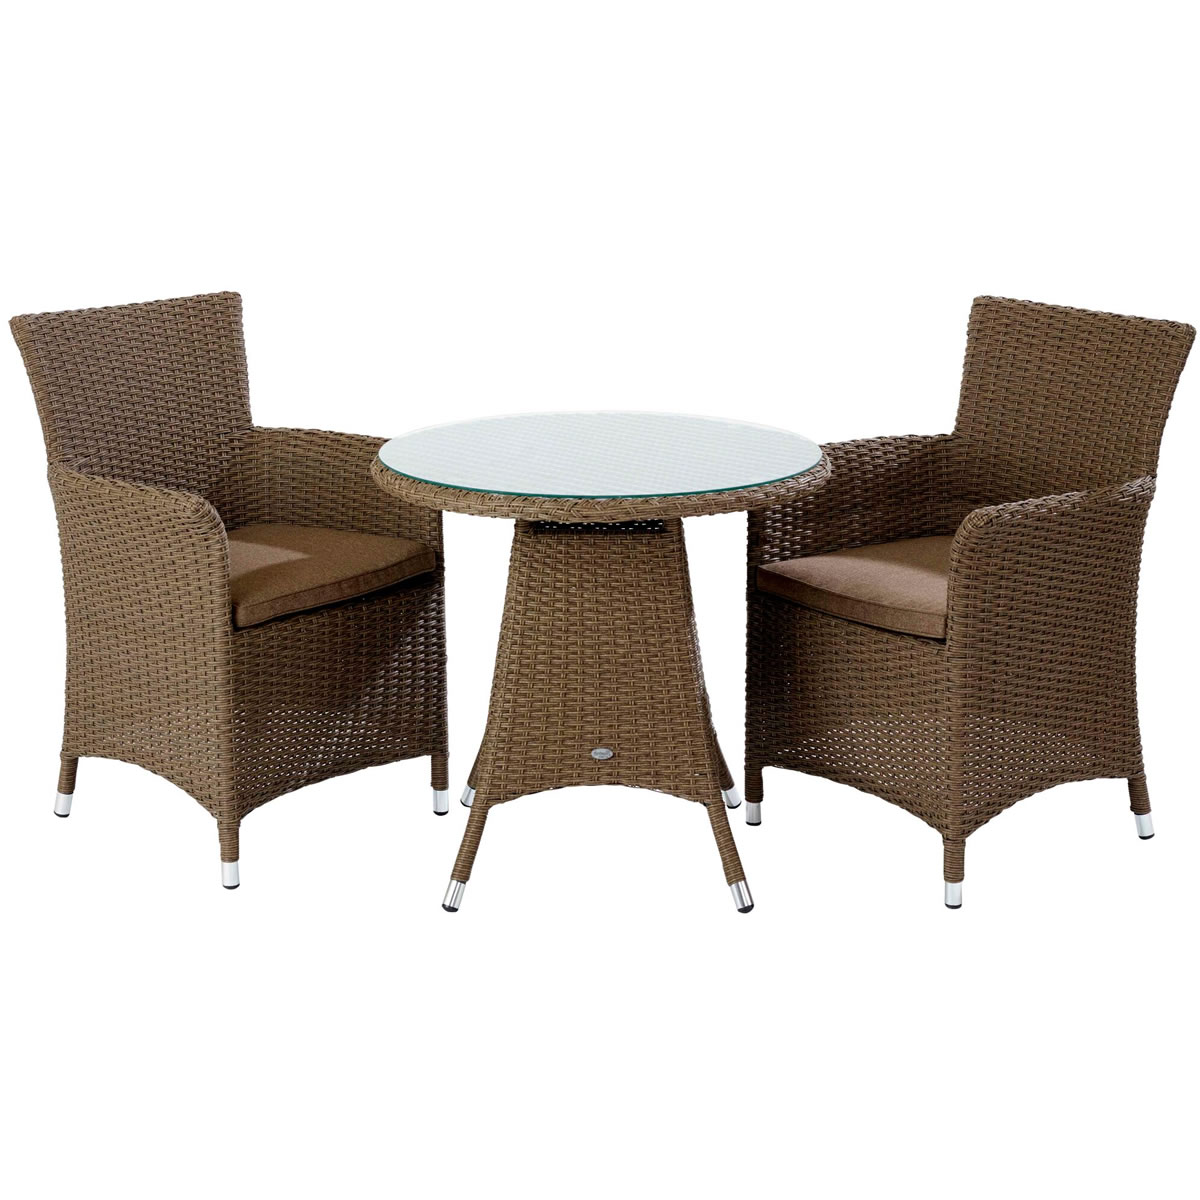 Hartman Appleton Bistro Garden Furniture Set In Sepia